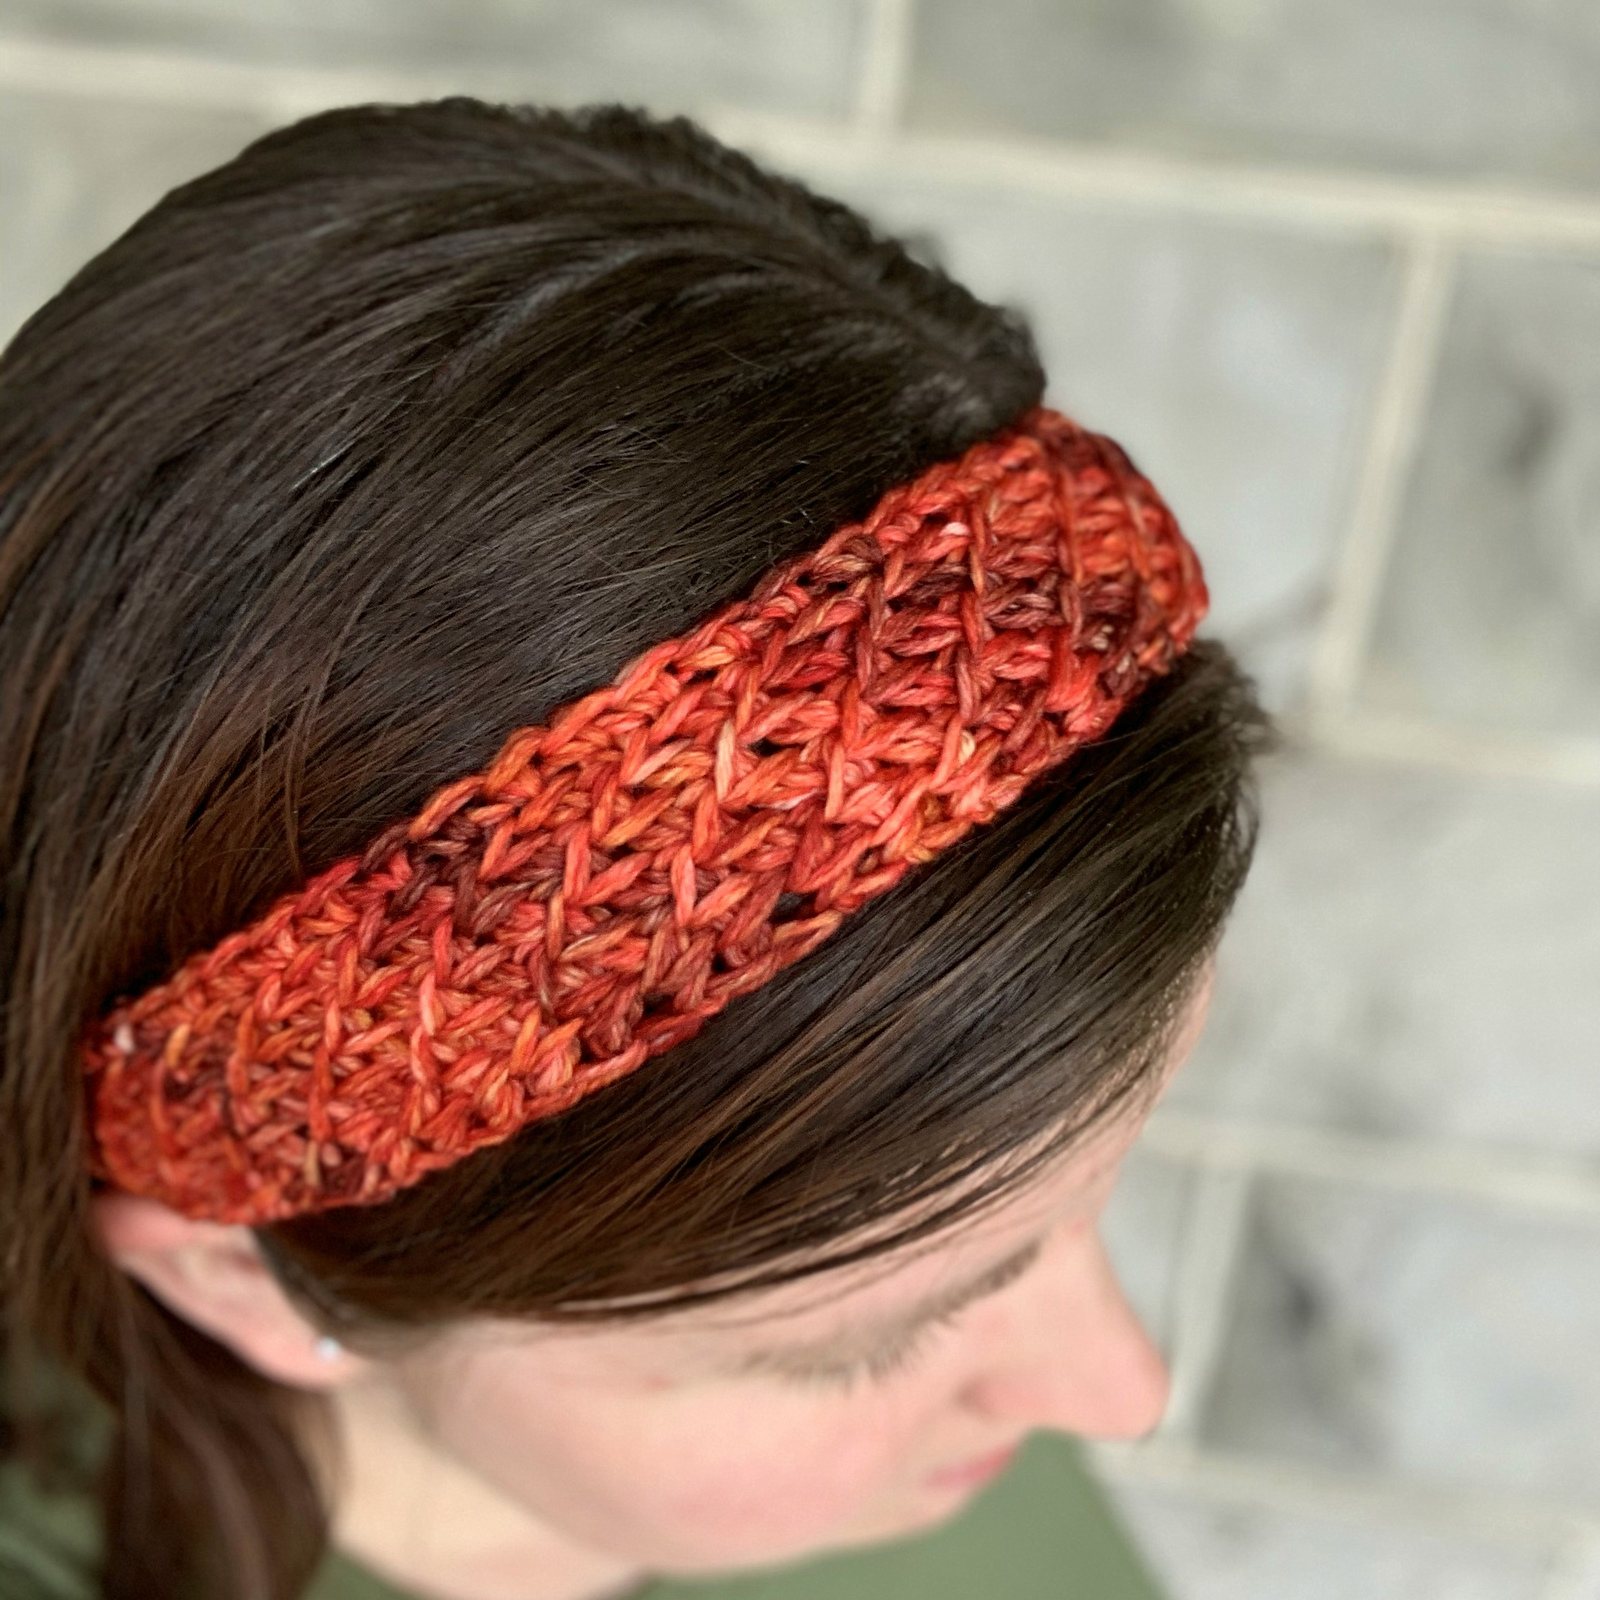 Indie Design Gift Along 2020 Fave Headband Patterns 121